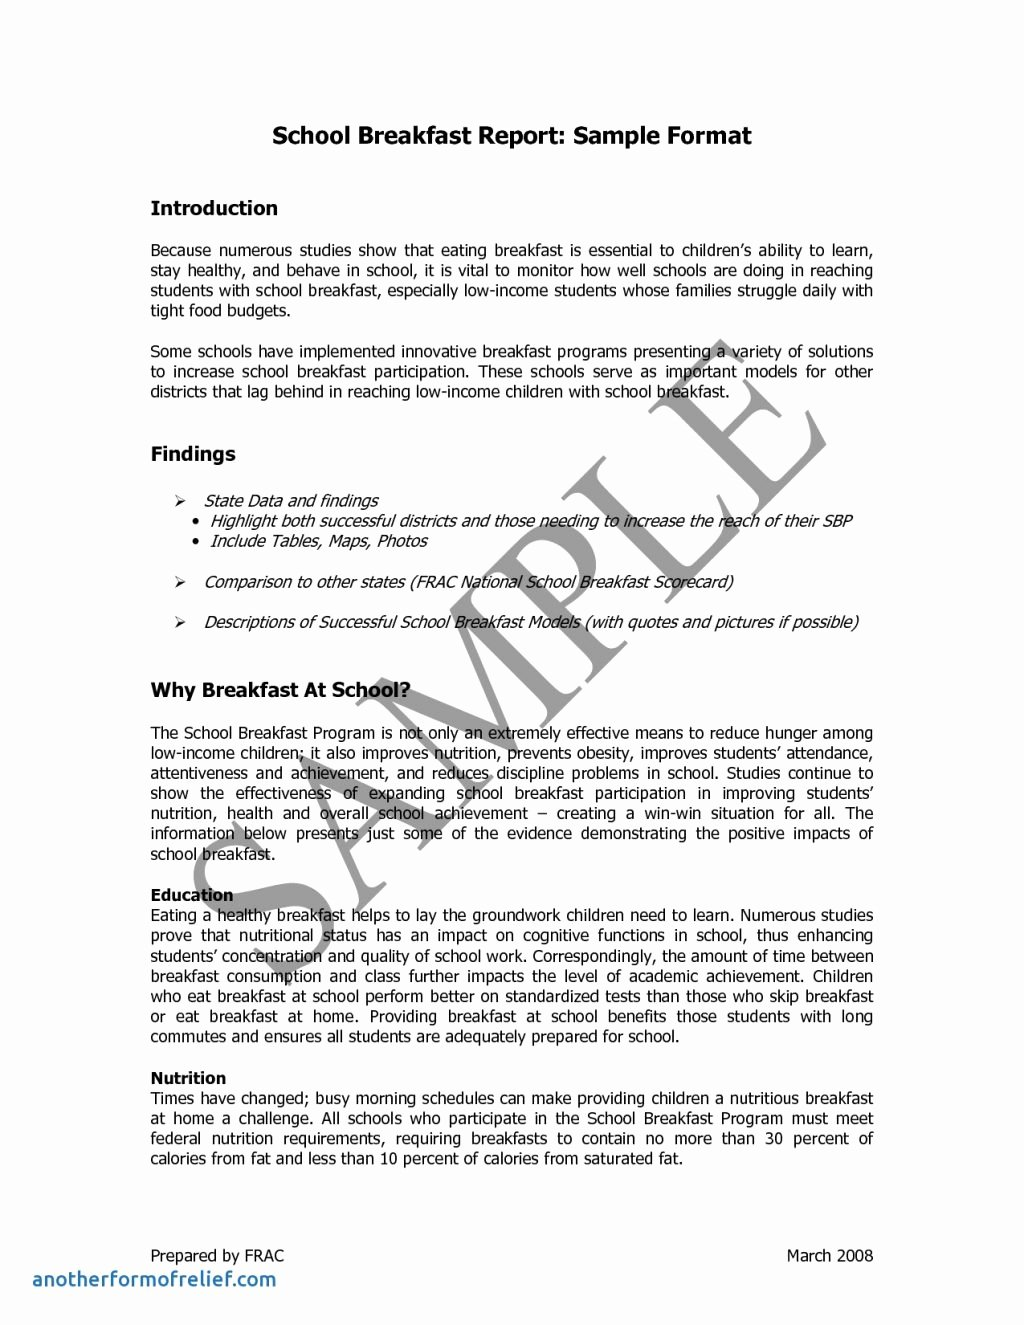 Findings Report Template Unique Findings Report Sample Key Template Best Research